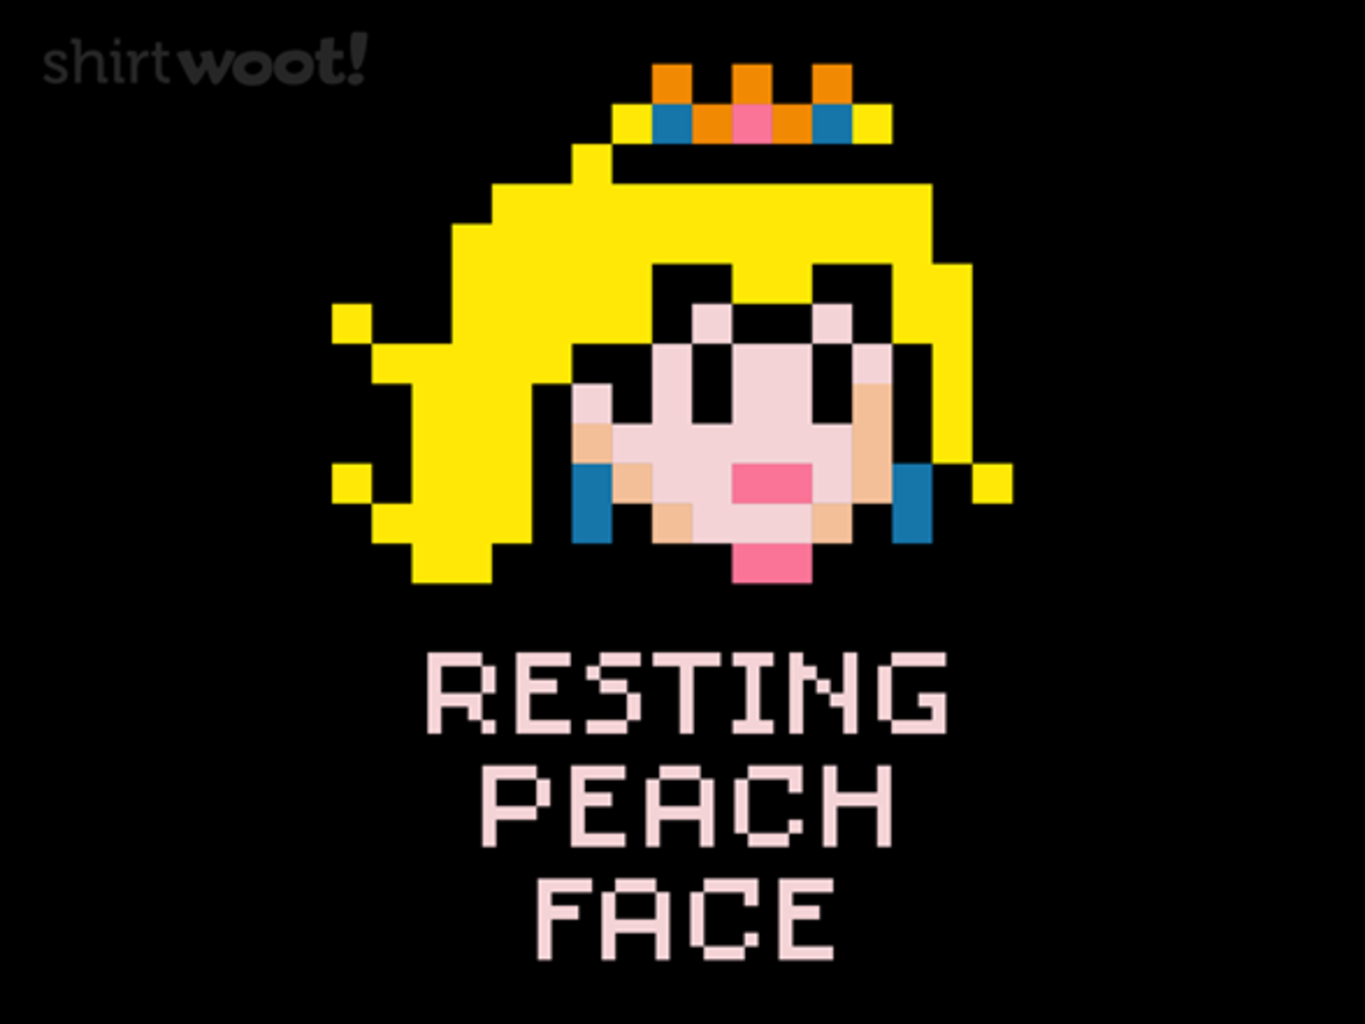 Woot!: Resting Peach Face